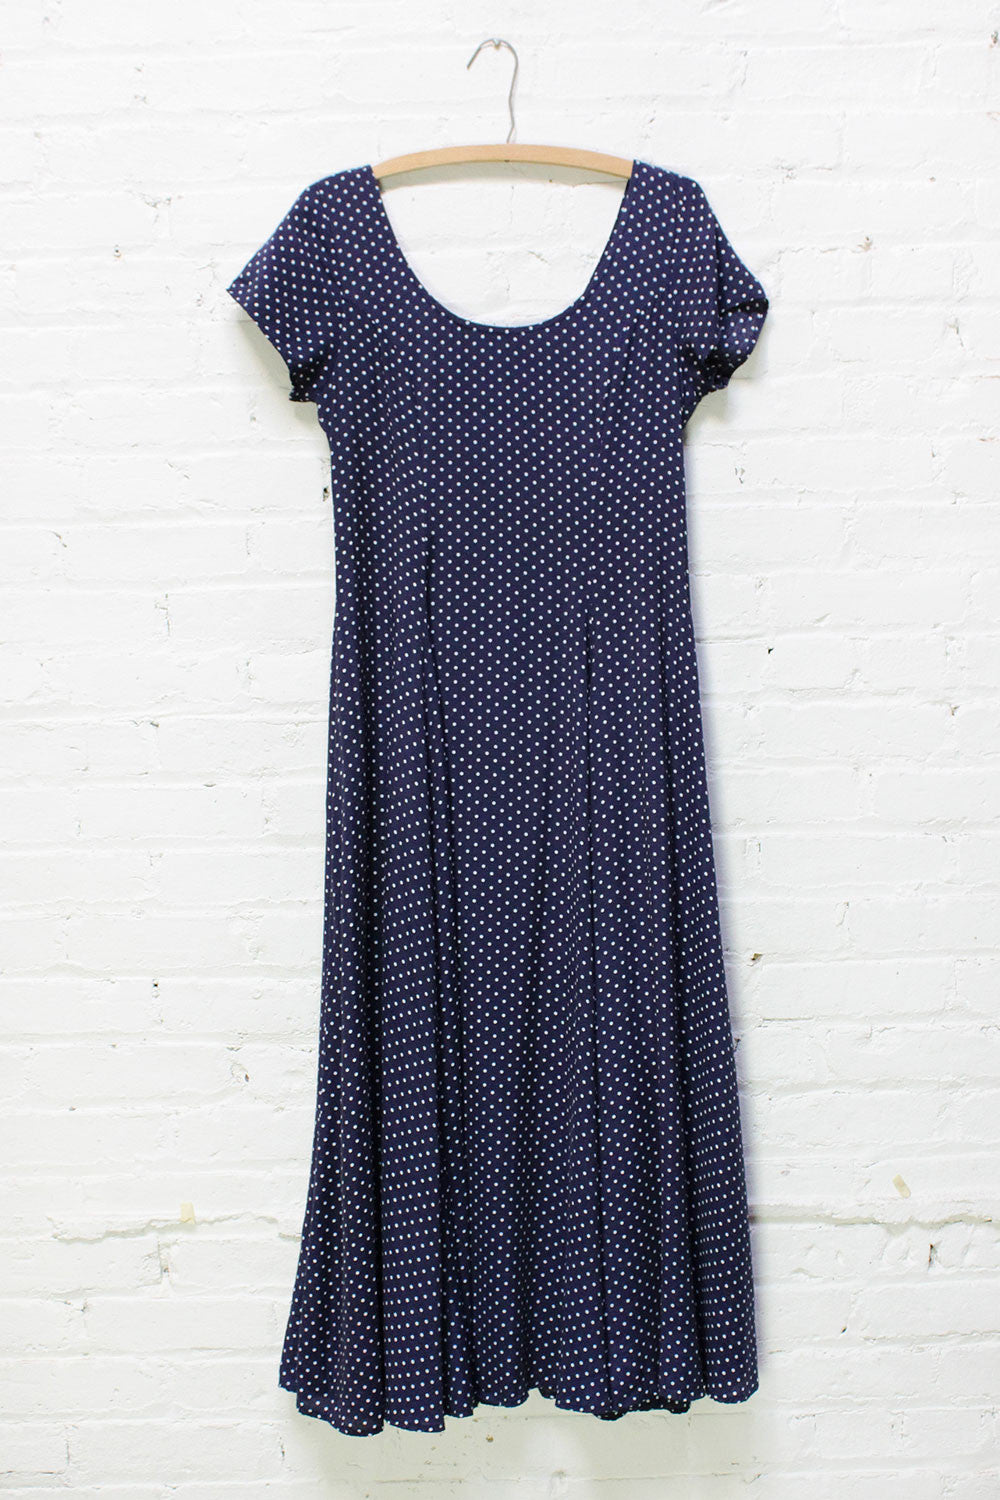 Dotty Scoop Dress M/L